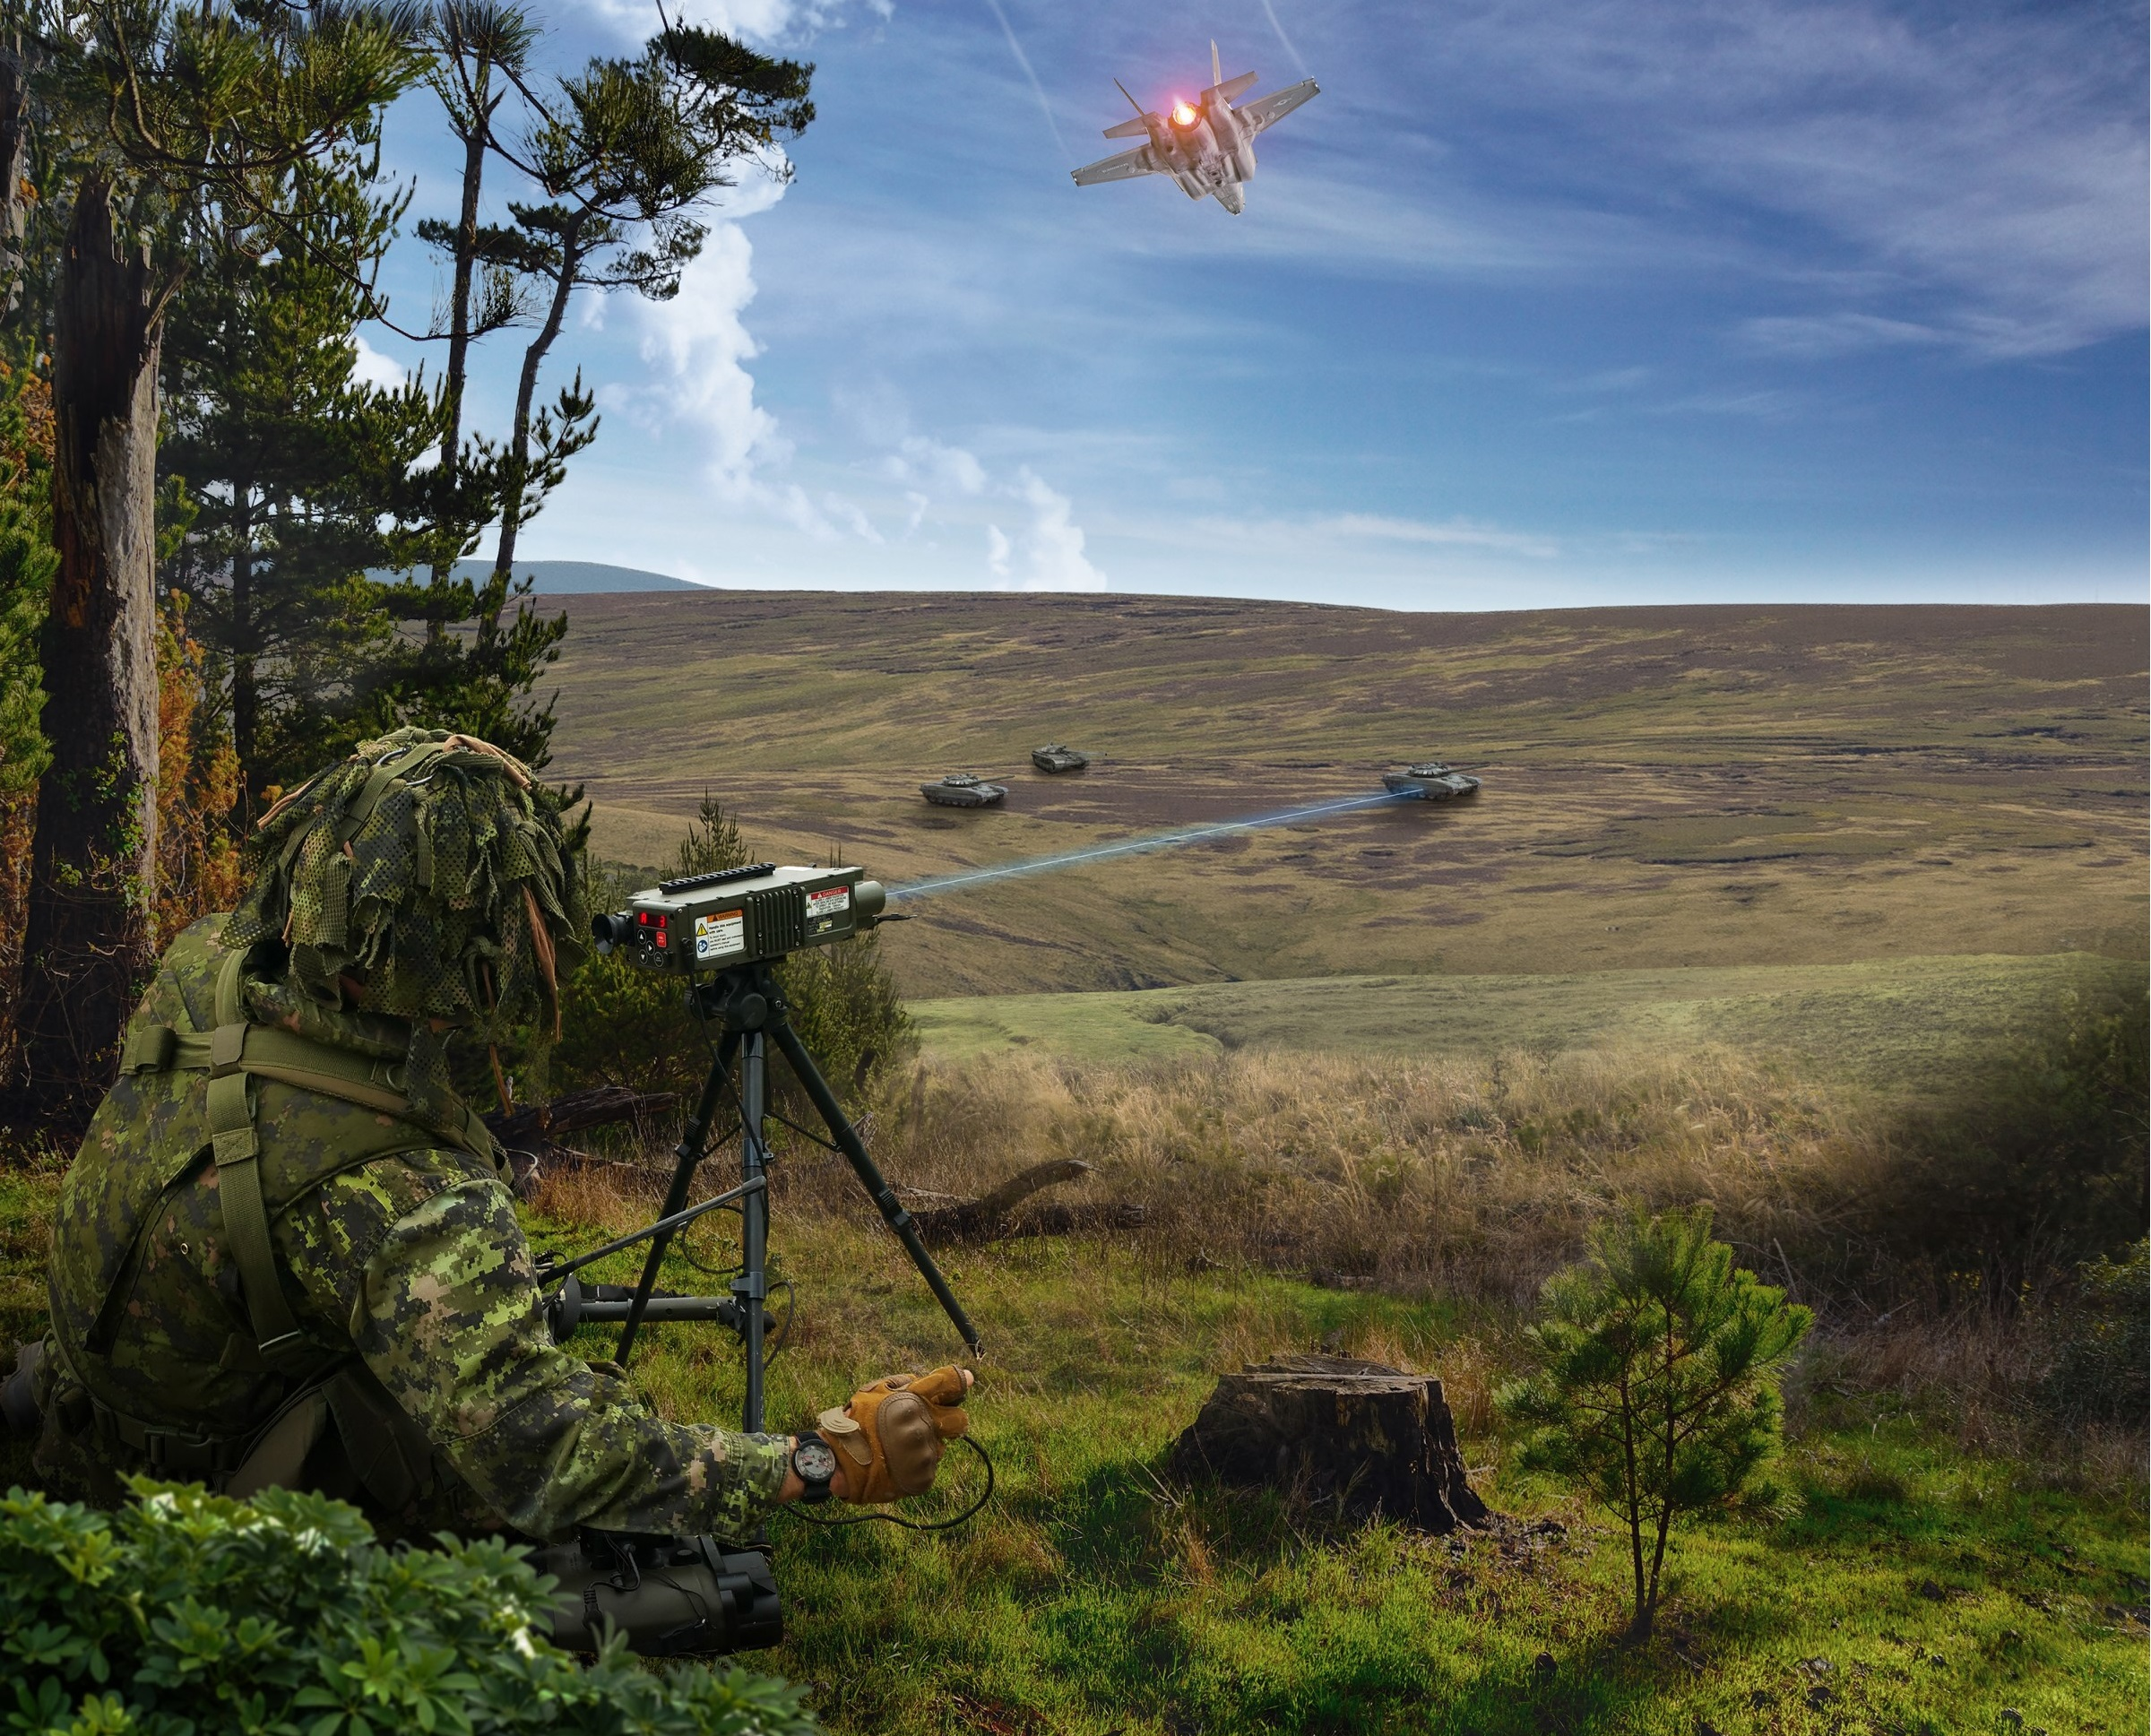 Leonardo Awarded Contract to Supply Slovenian Armed Forces with Type 163 Laser Target Designator